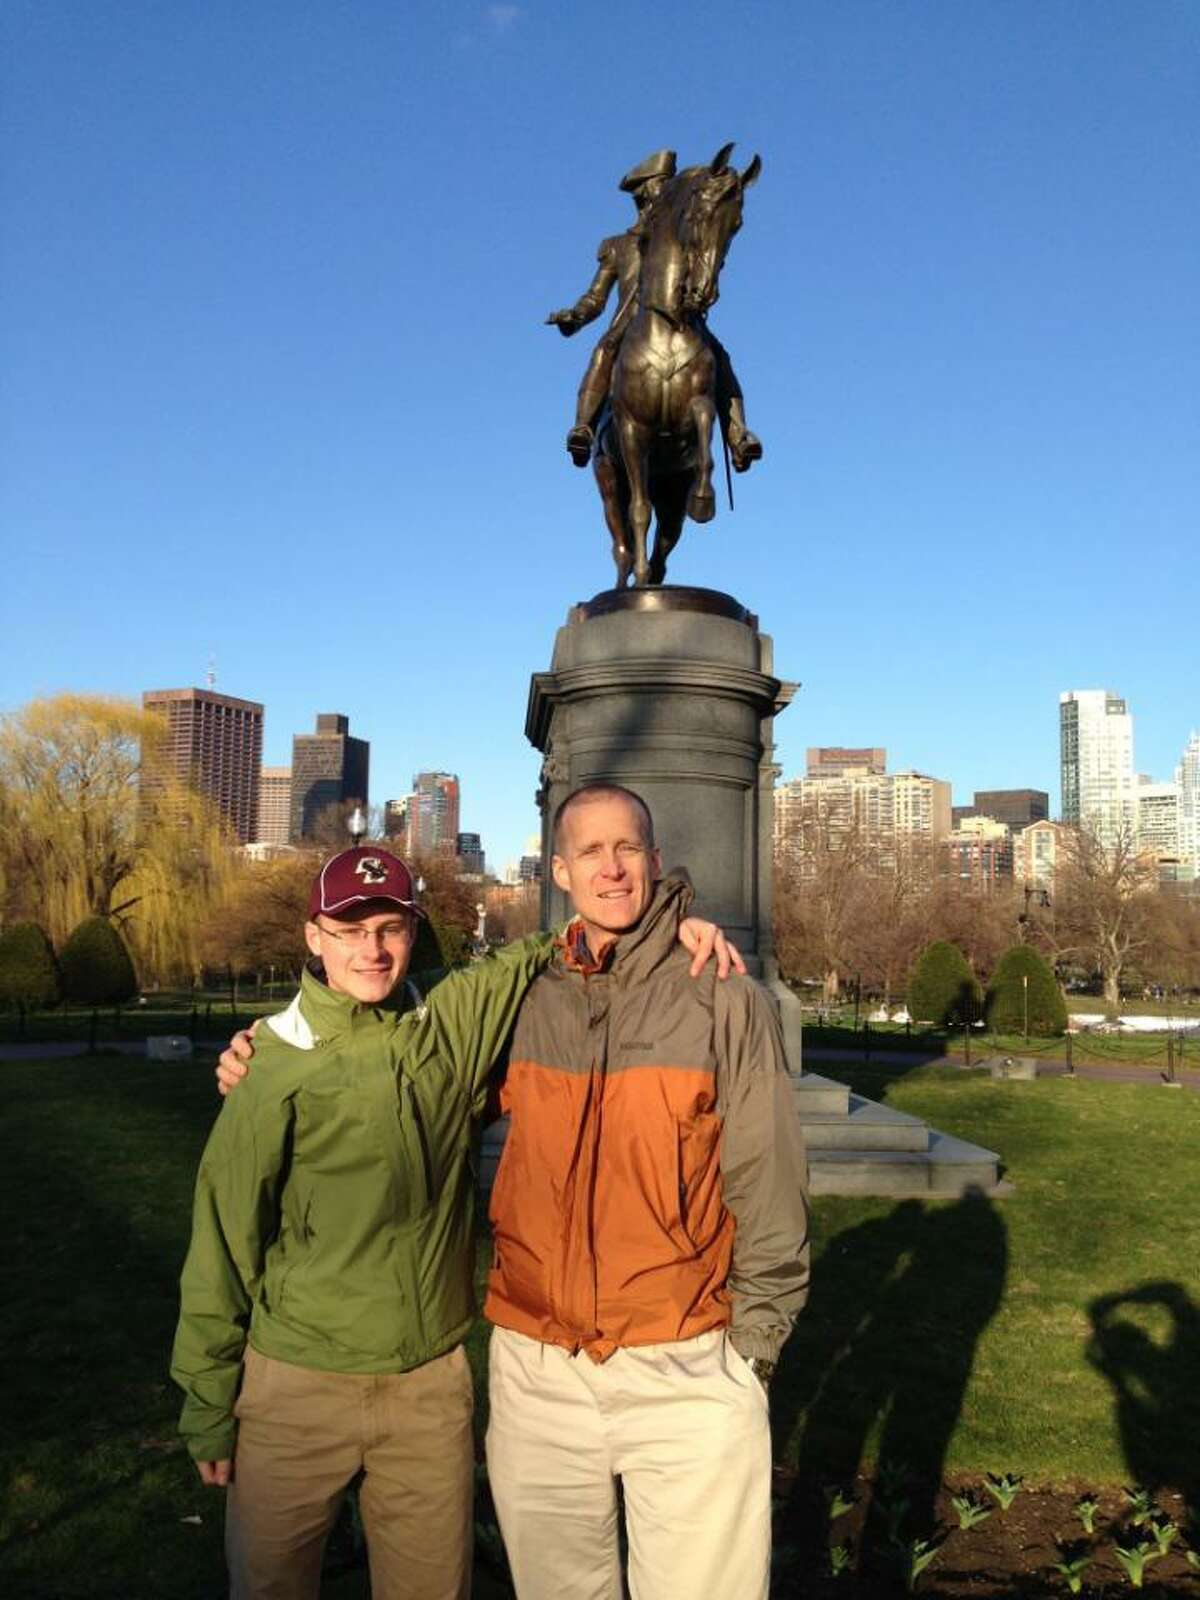 Sanford (right) and his son Matthew in Boston. Contributed photo.